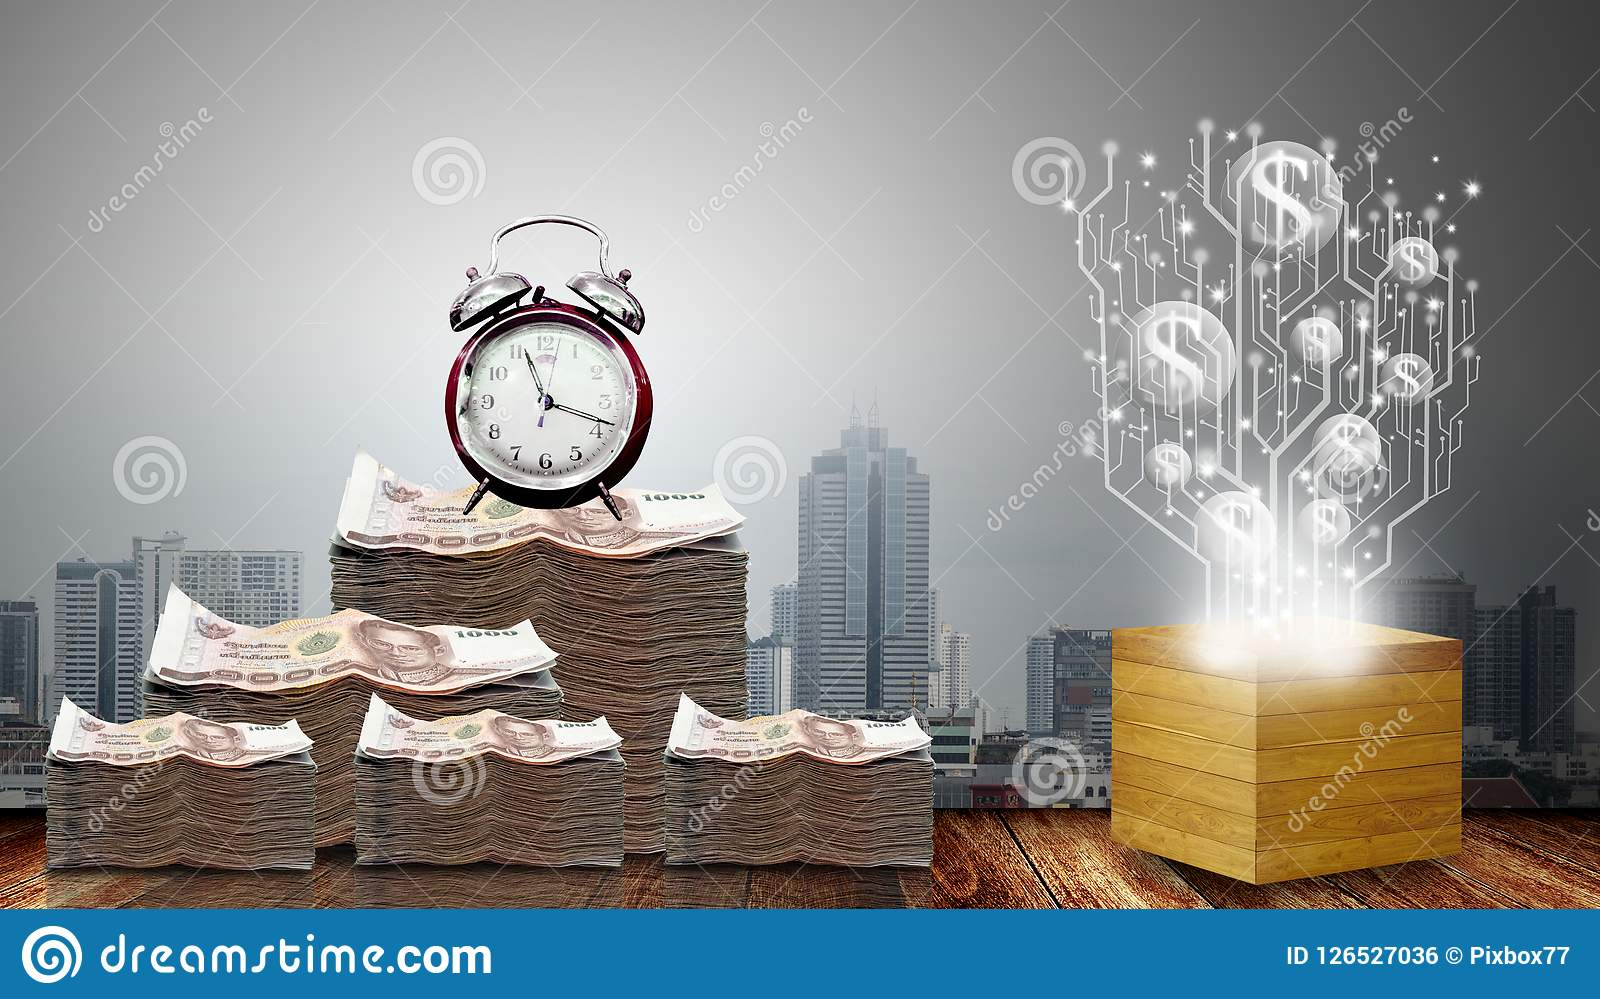 Profit money from digtial currency